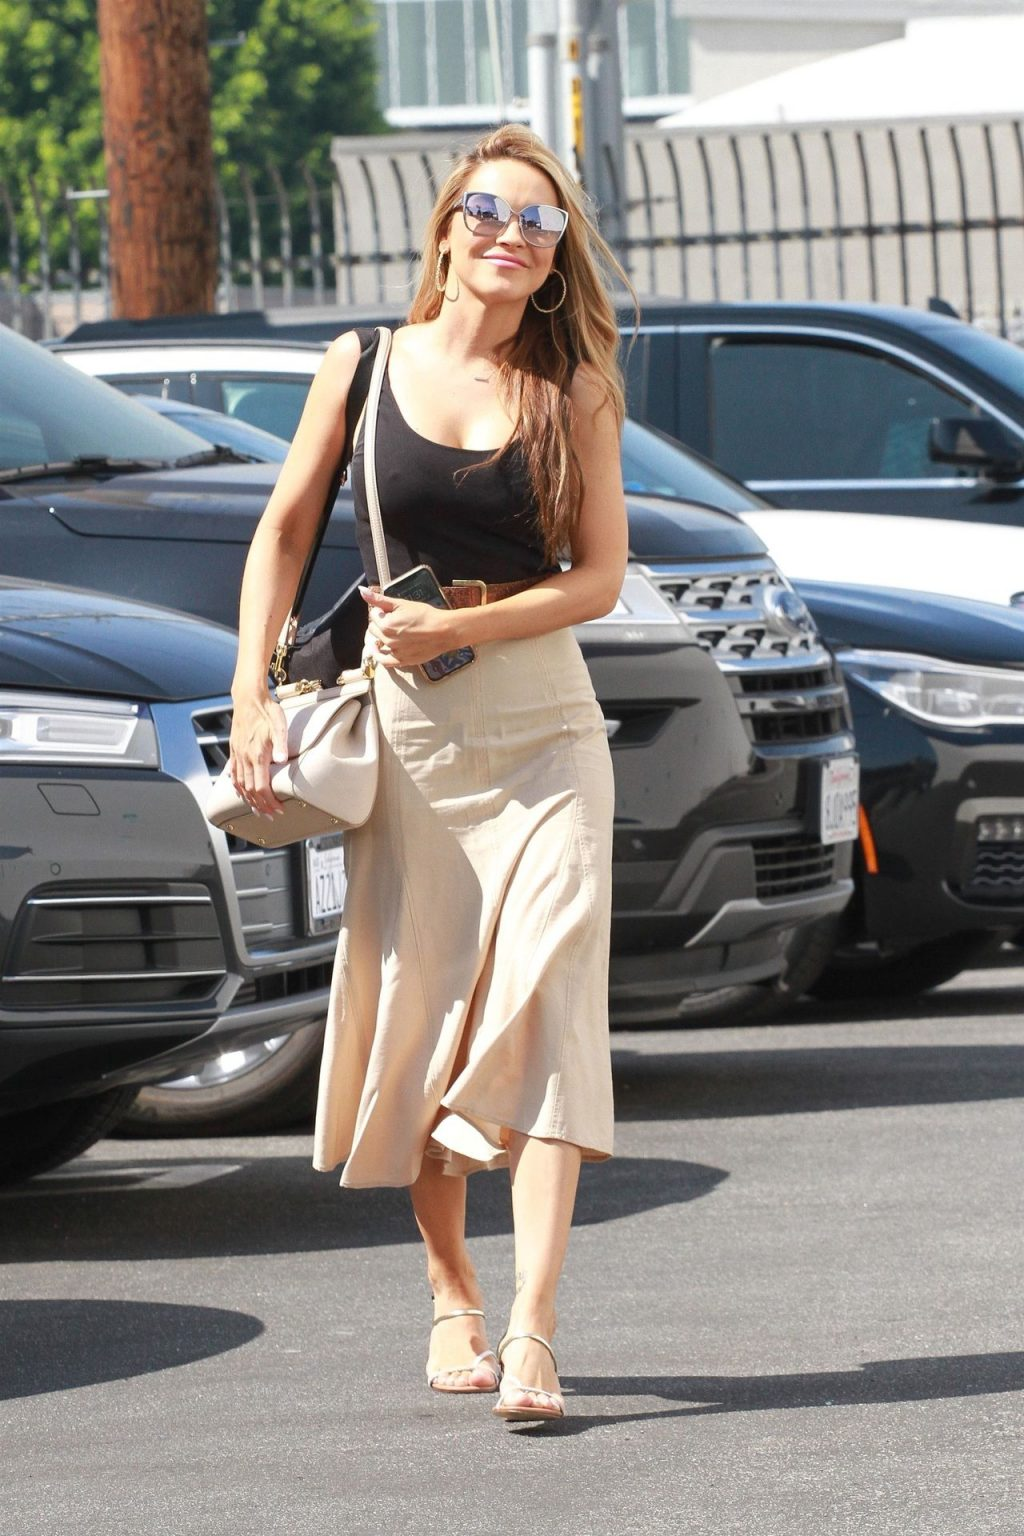 Chrishell Stause is Seen All Smile at DWTS Studios (57 Photos)